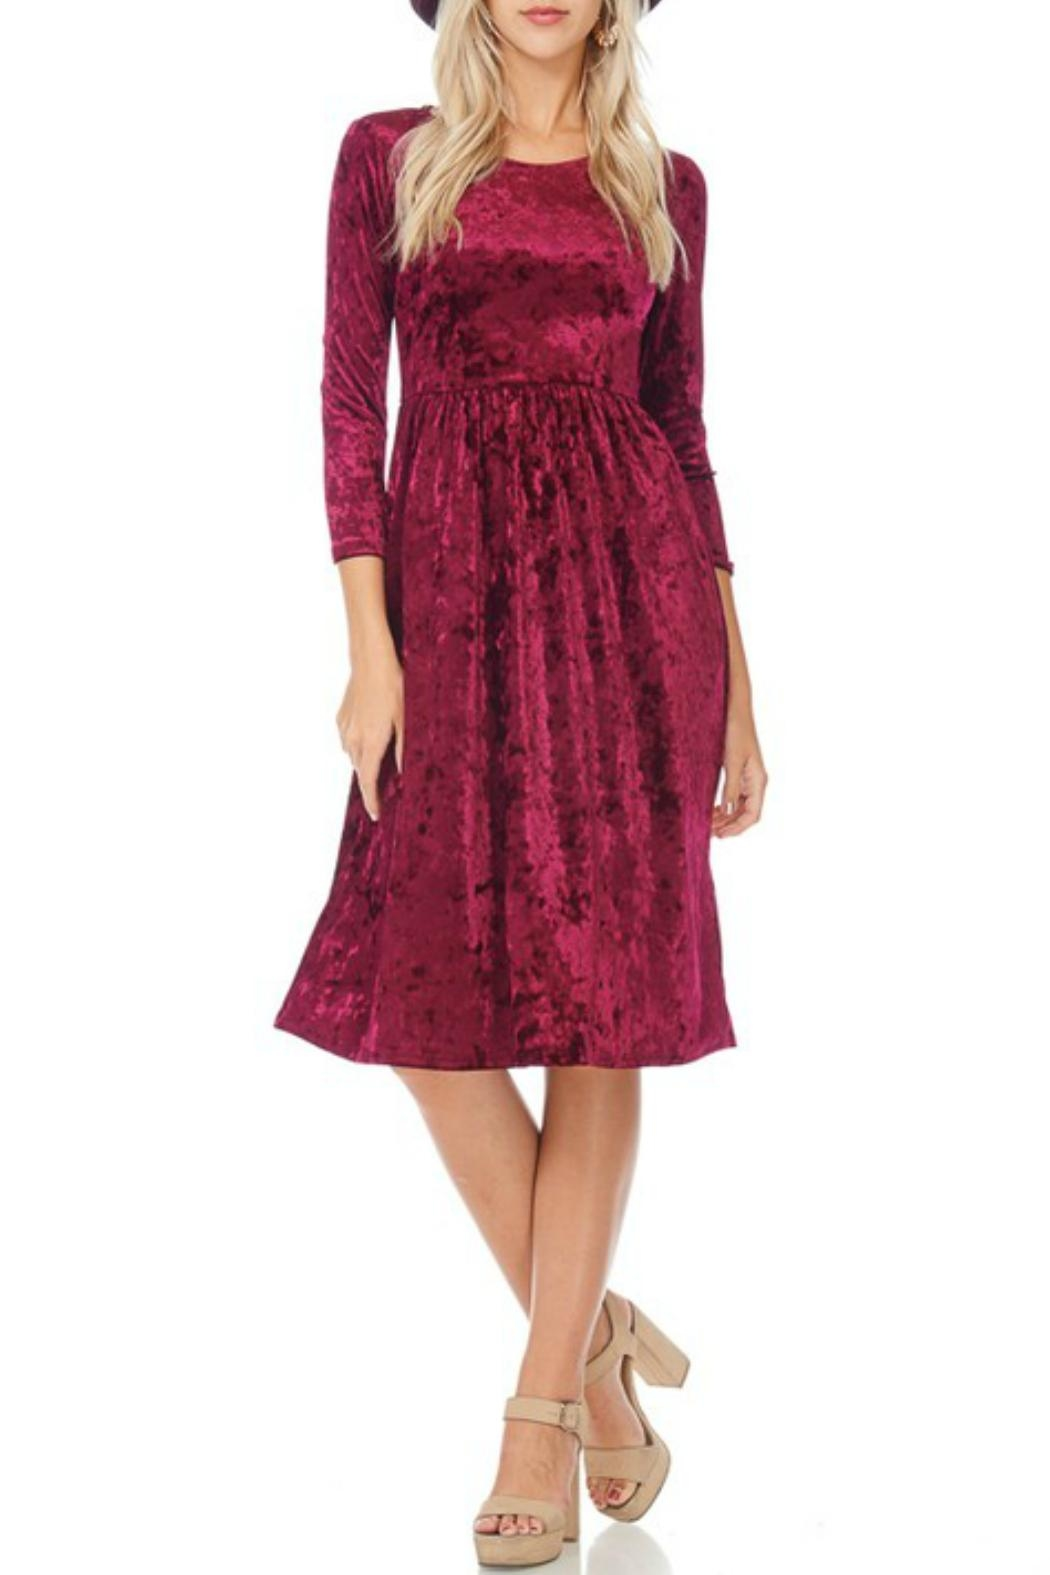 ffe50f810 Reborn J Velvet Holiday Dress from Tennessee by Terri Leigh's ...